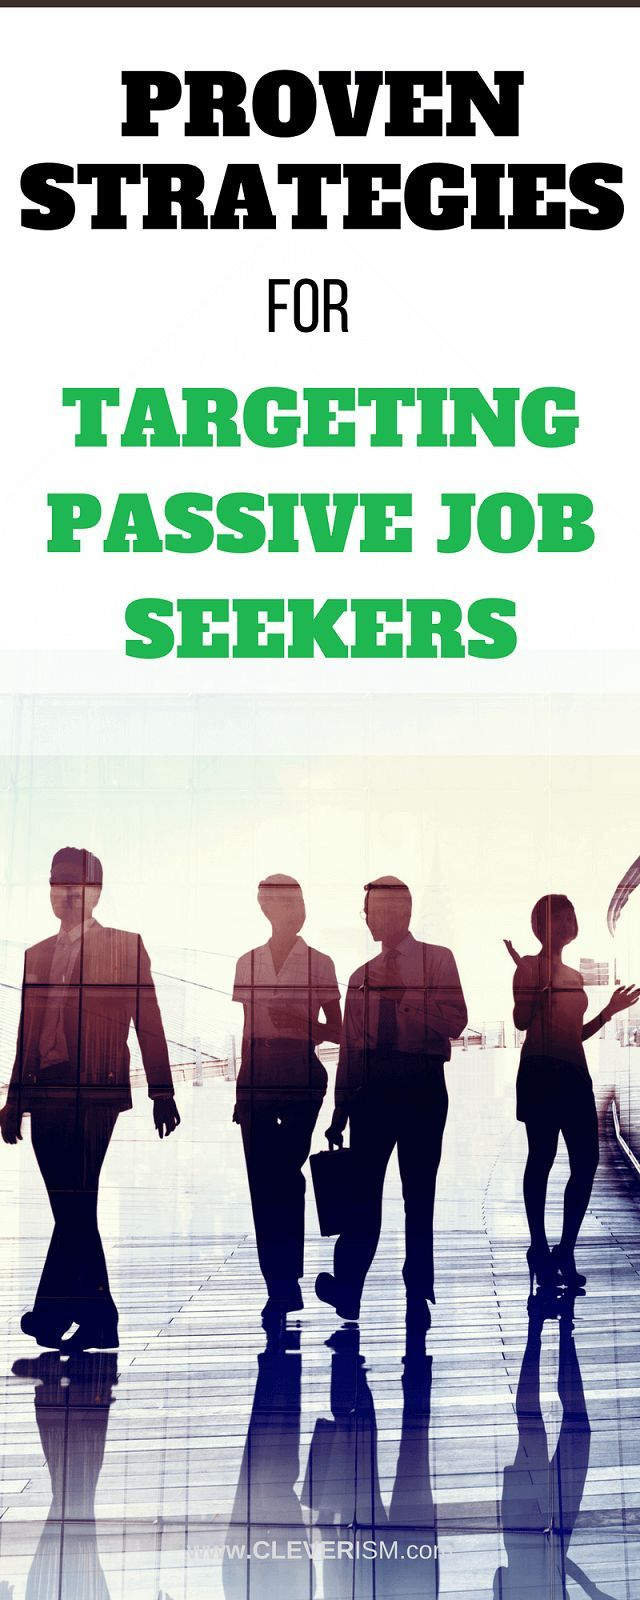 Proven Strategies For Targeting Passive Job Seekers Job Seeker Human Resources Quotes Job Interview Advice